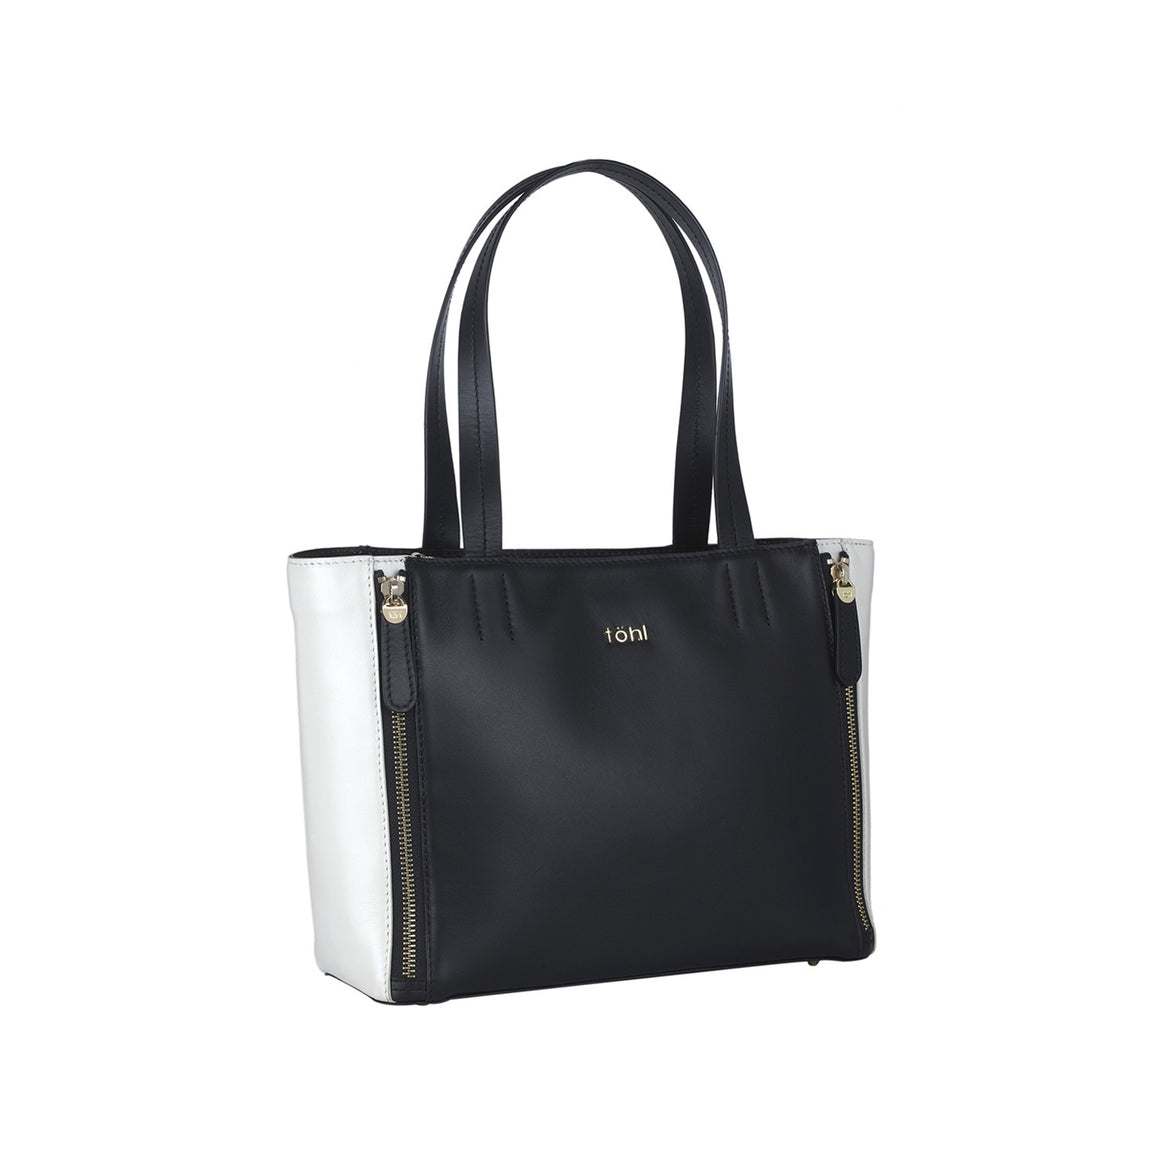 HH 0004 - TOHL VARICK WOMEN'S TOTE BAG - CHARCOAL BLACK